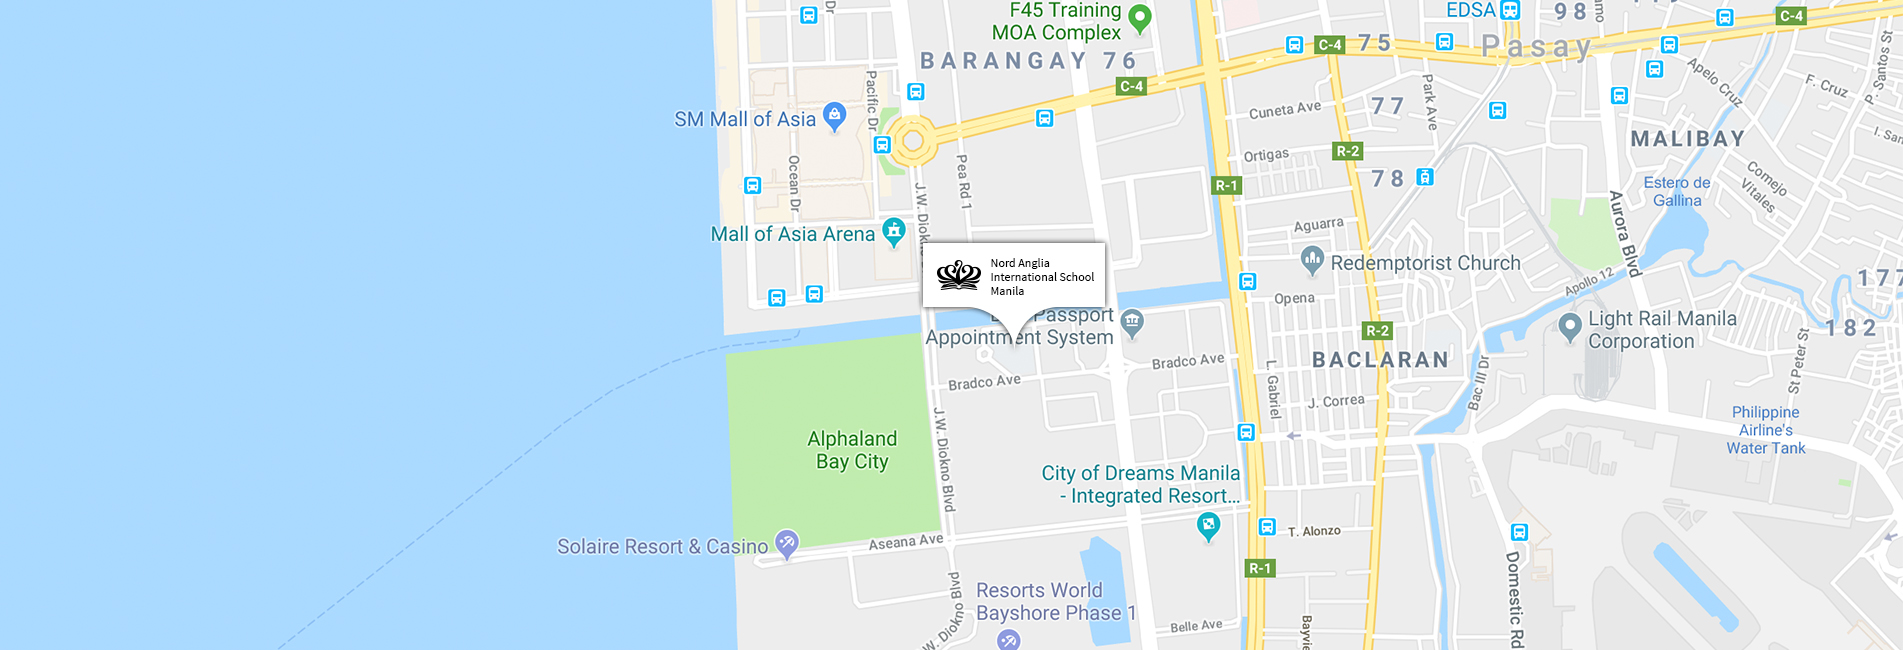 Nord Anglia International School Manila location map